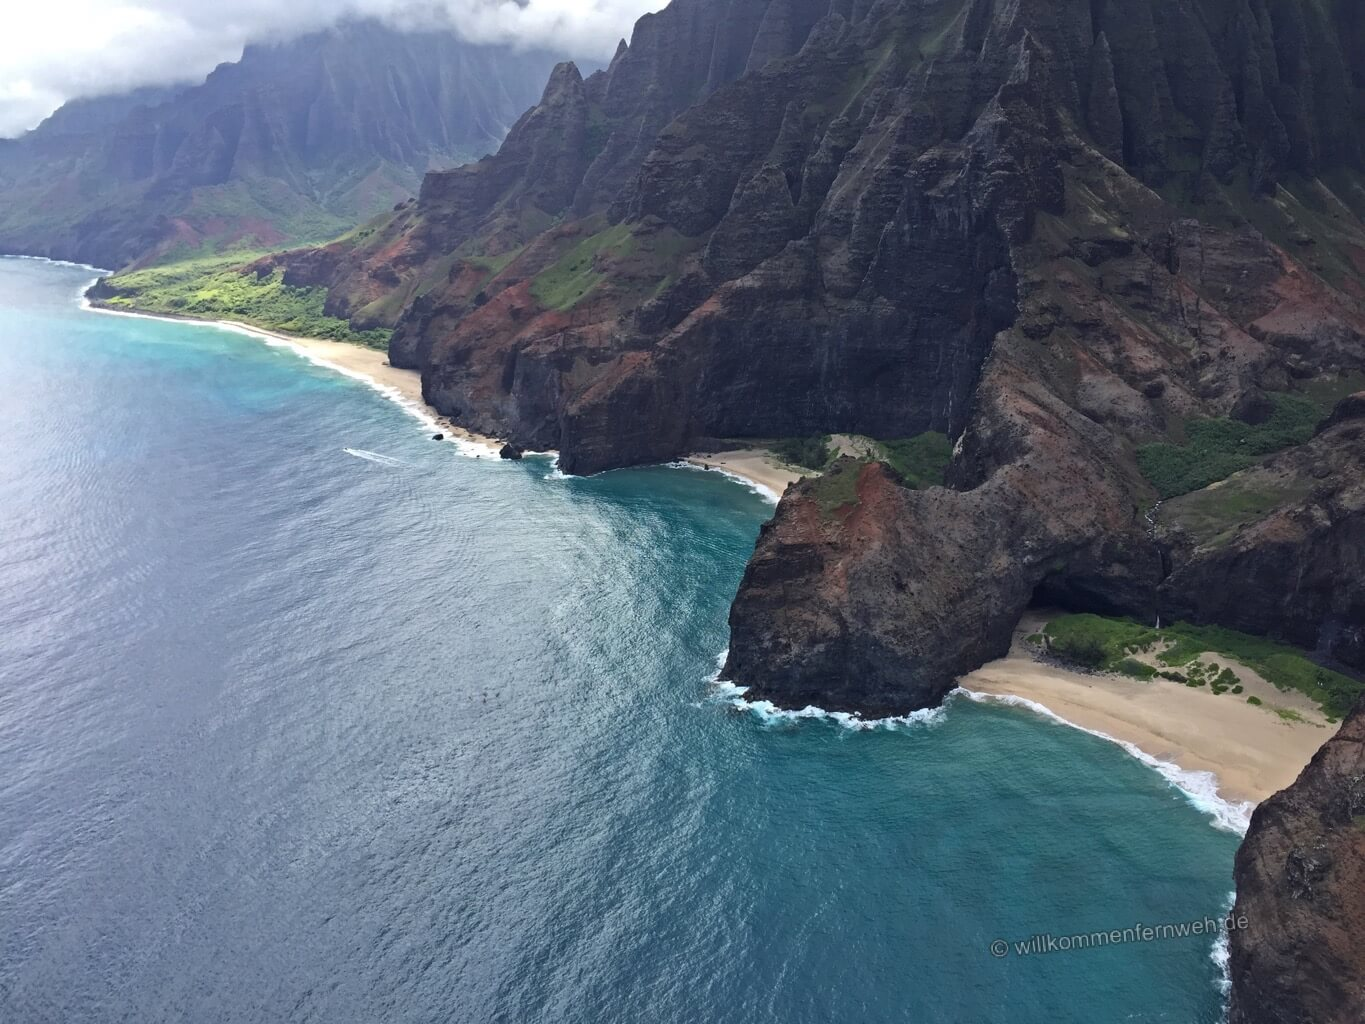 Honopu Beach mit Na Pali Coast und Kalalau Valley